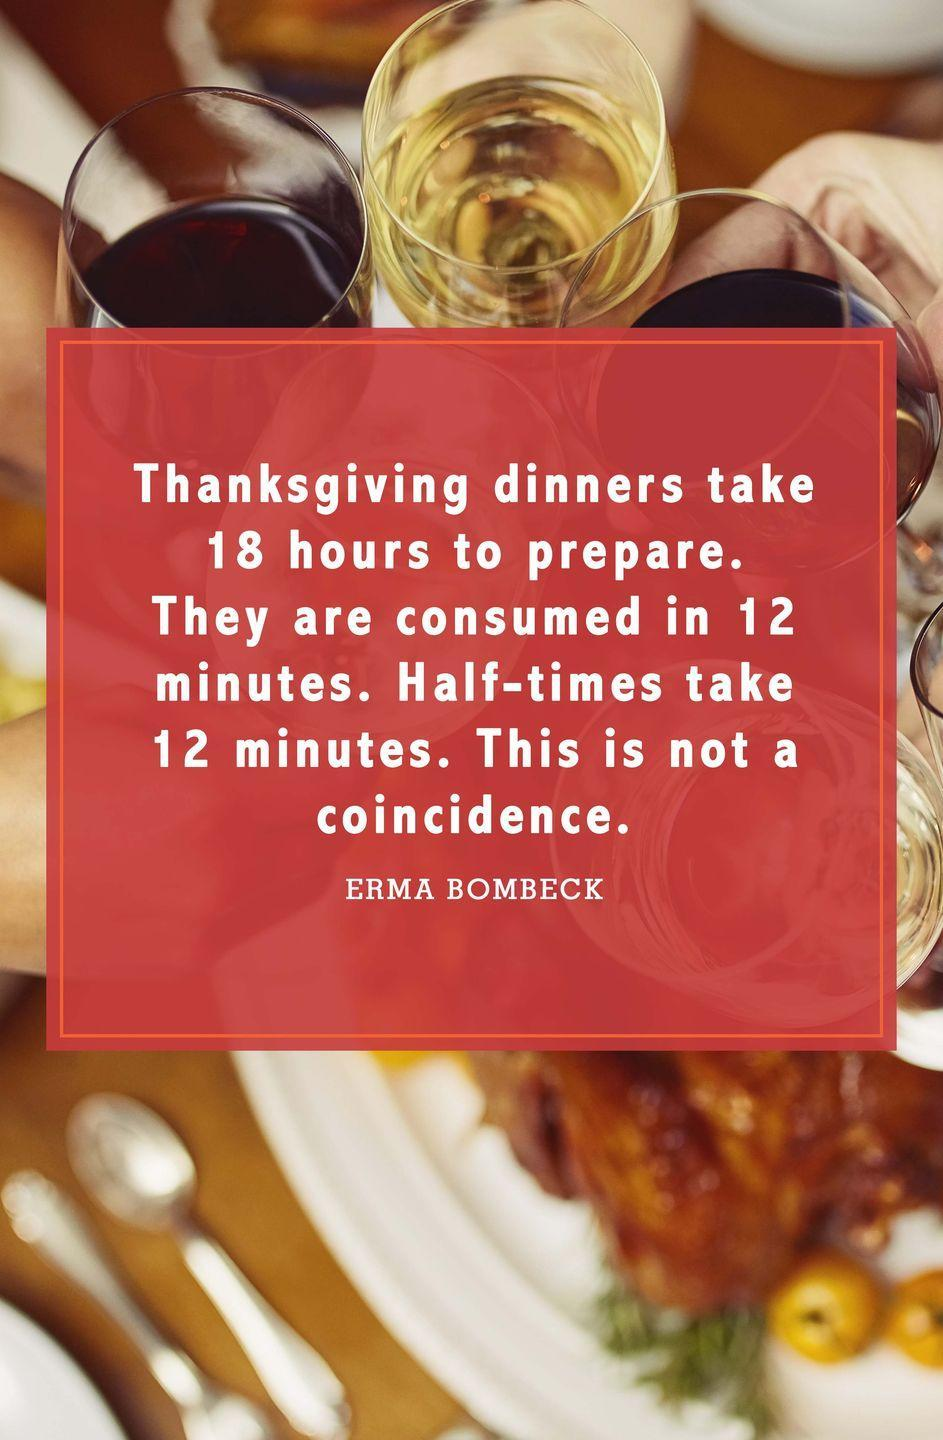 "<p>""Thanksgiving dinners take 18 hours to prepare. They are consumed in 12 minutes. Half-times take 12 minutes. This is not a coincidence.""</p>"